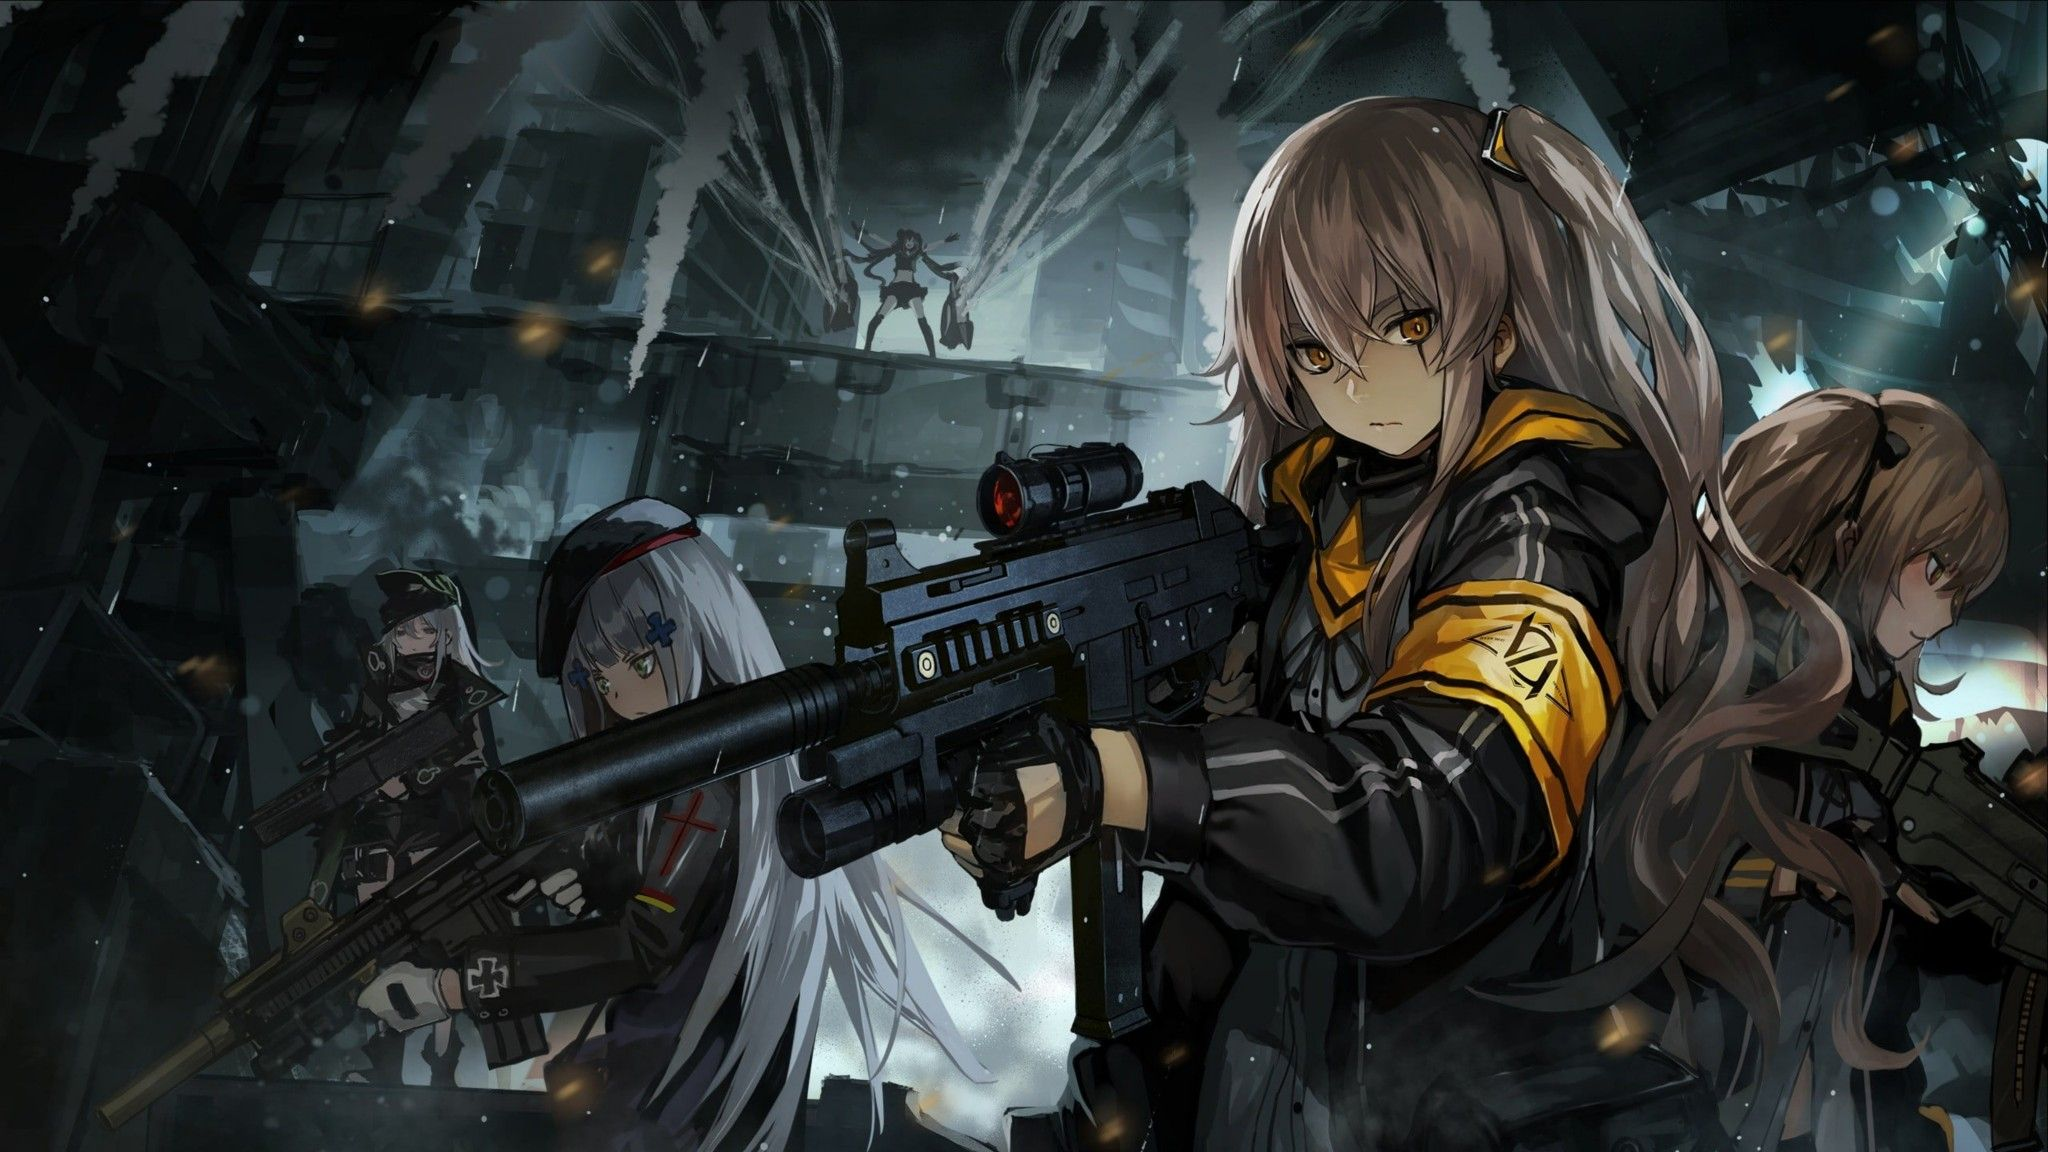 Pin by Graeme Phillips on art in 2020 Girls frontline